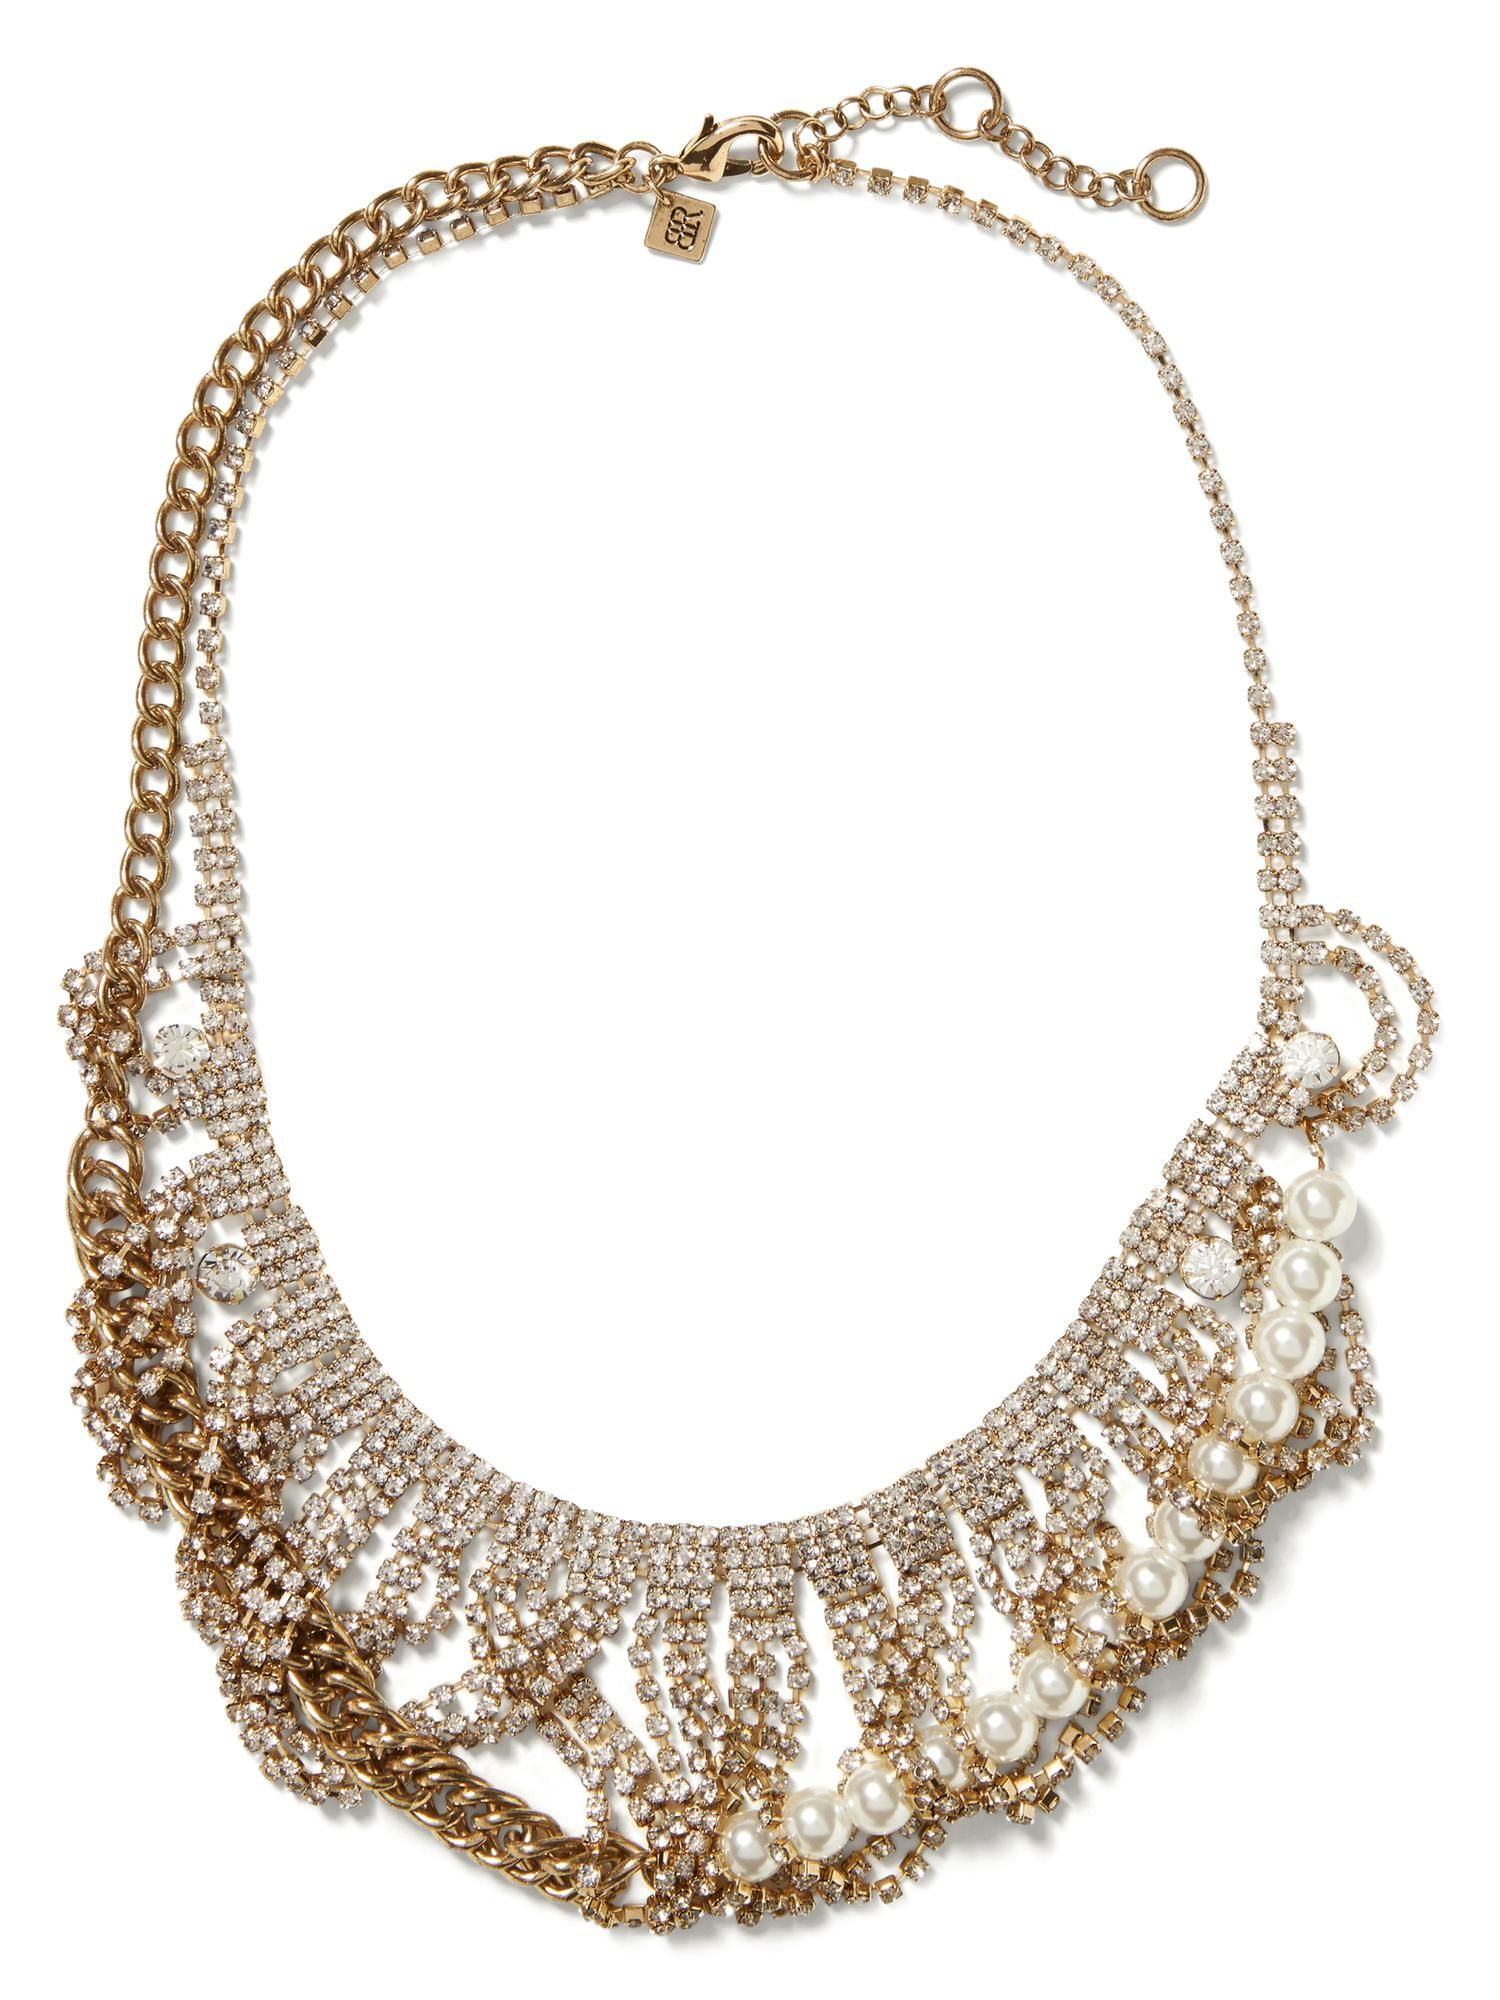 65a42a5eb7a43 Sparkle Swag Necklace | Statement Necklaces under $50 | Jewelry ...